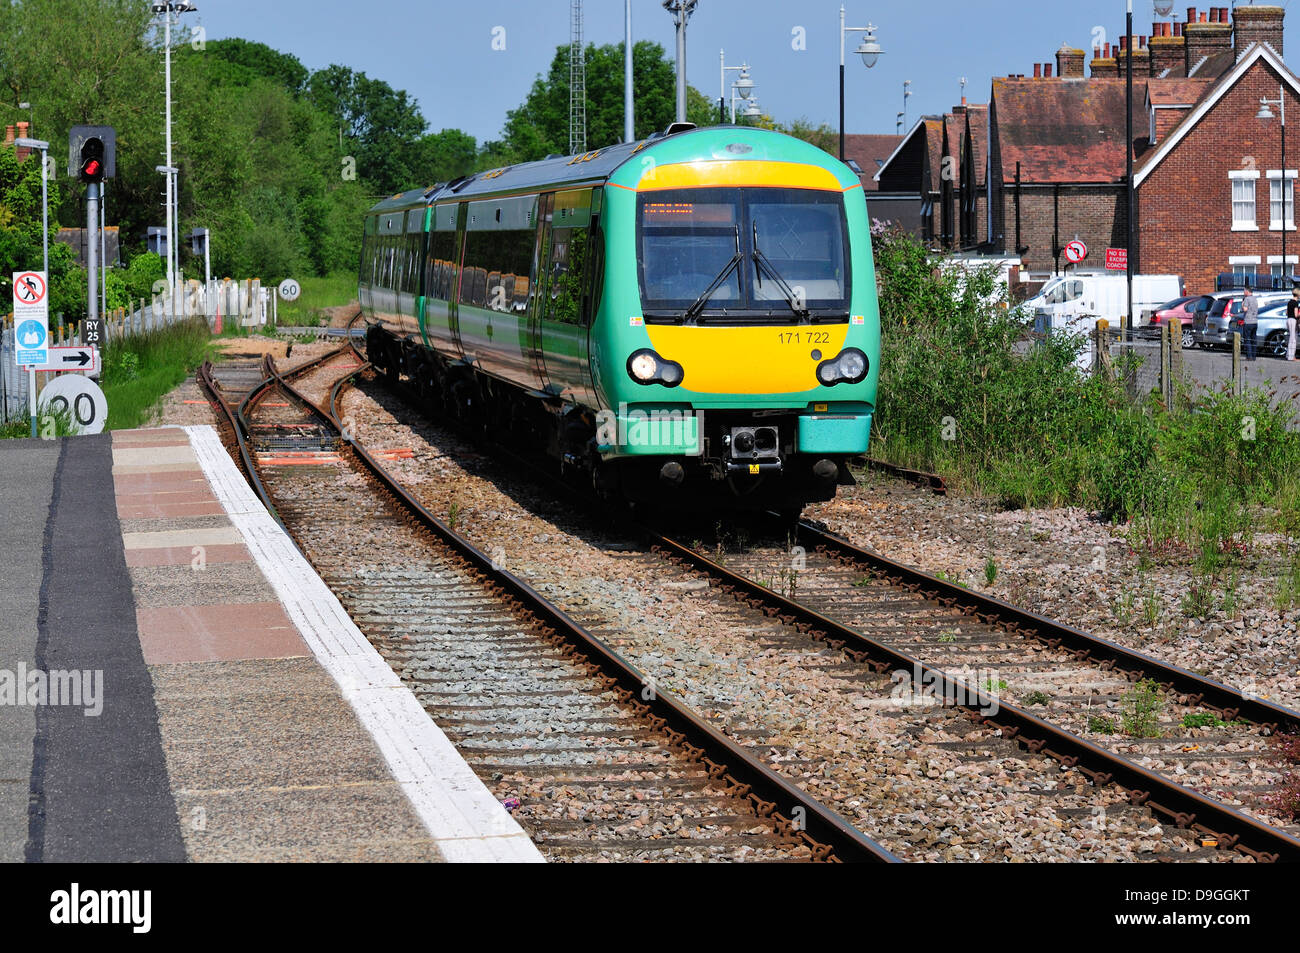 Rye, East Sussex, England, UK. 'Southern' train entering station (171 class Turbostar DMU - Diesel Multiple - Stock Image